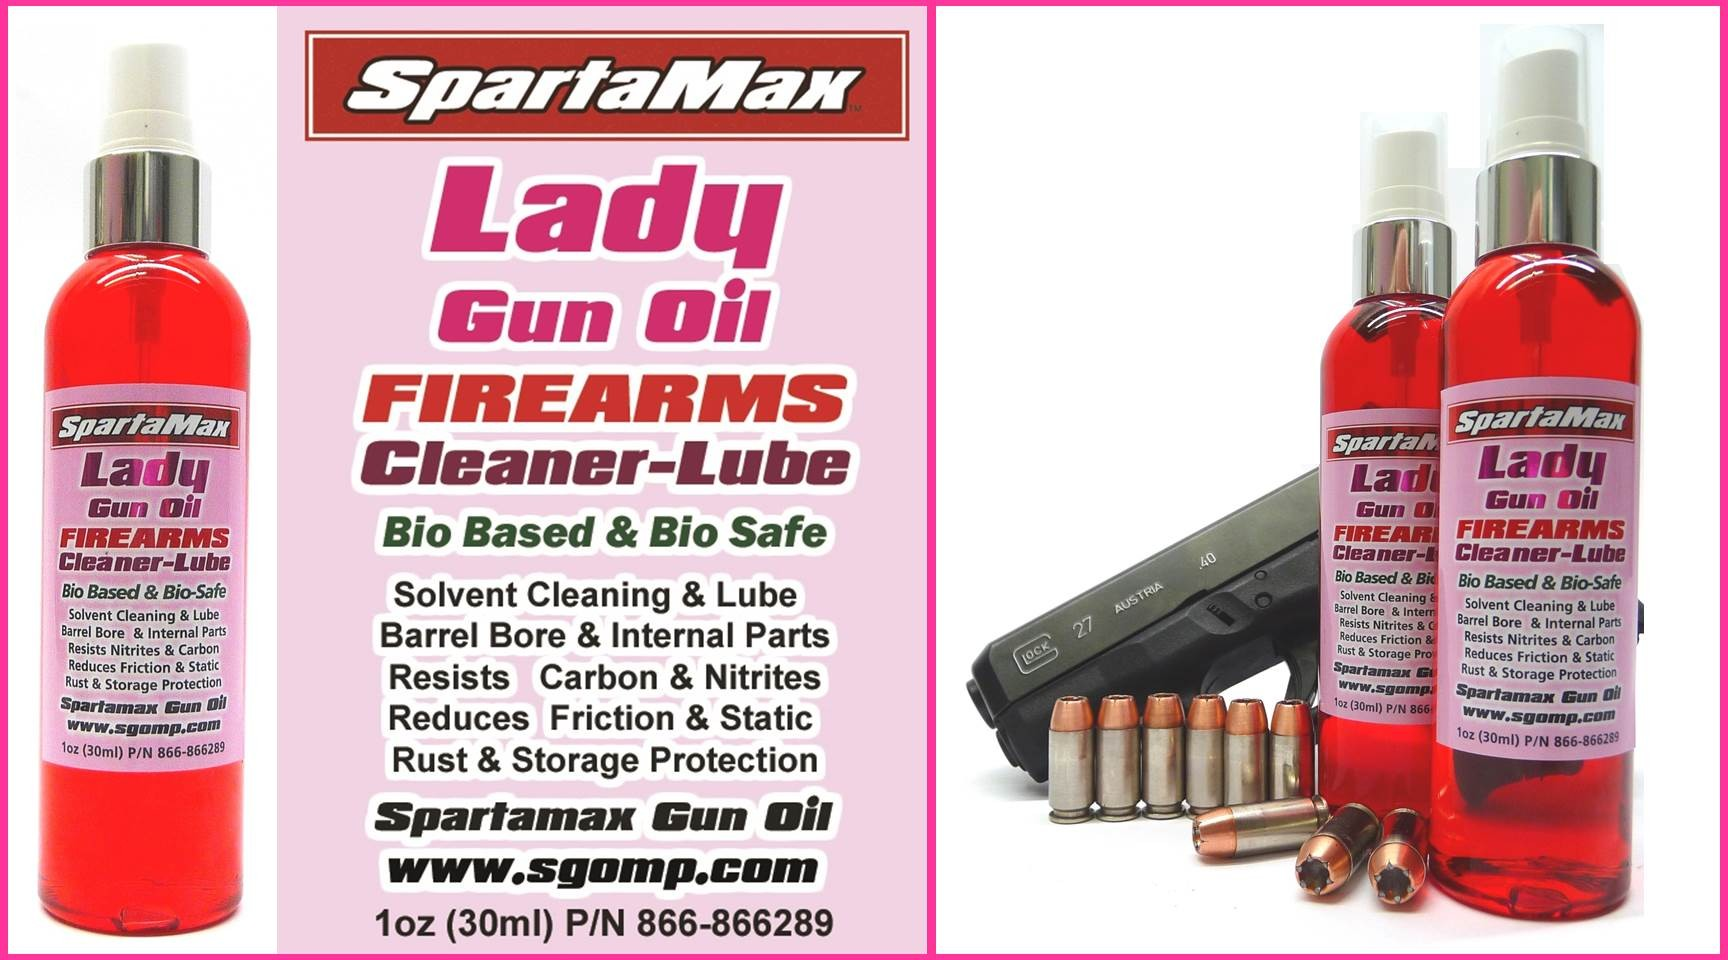 LADY GUN OIL 4OZ